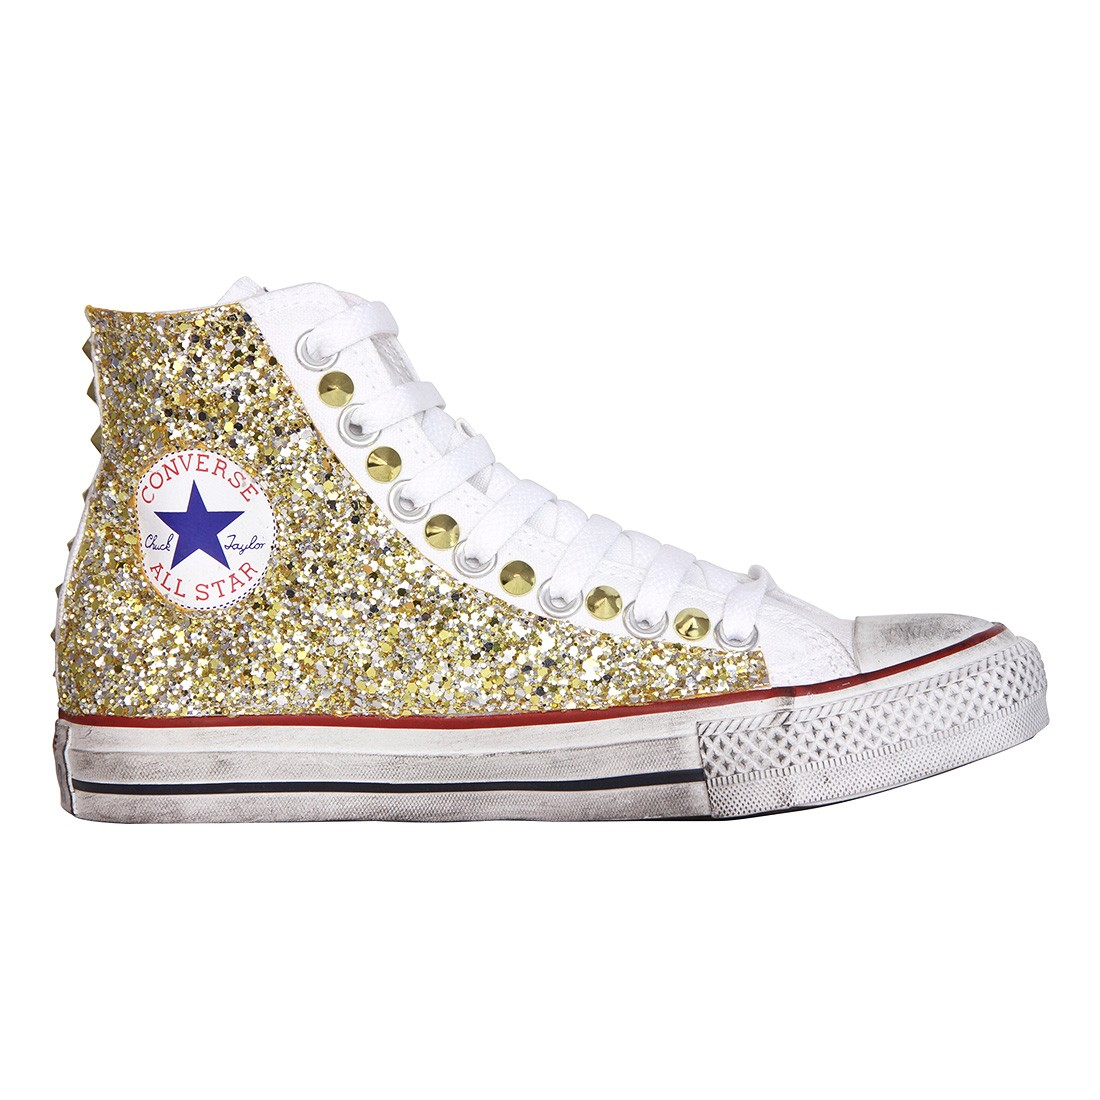 2all star converse bianco